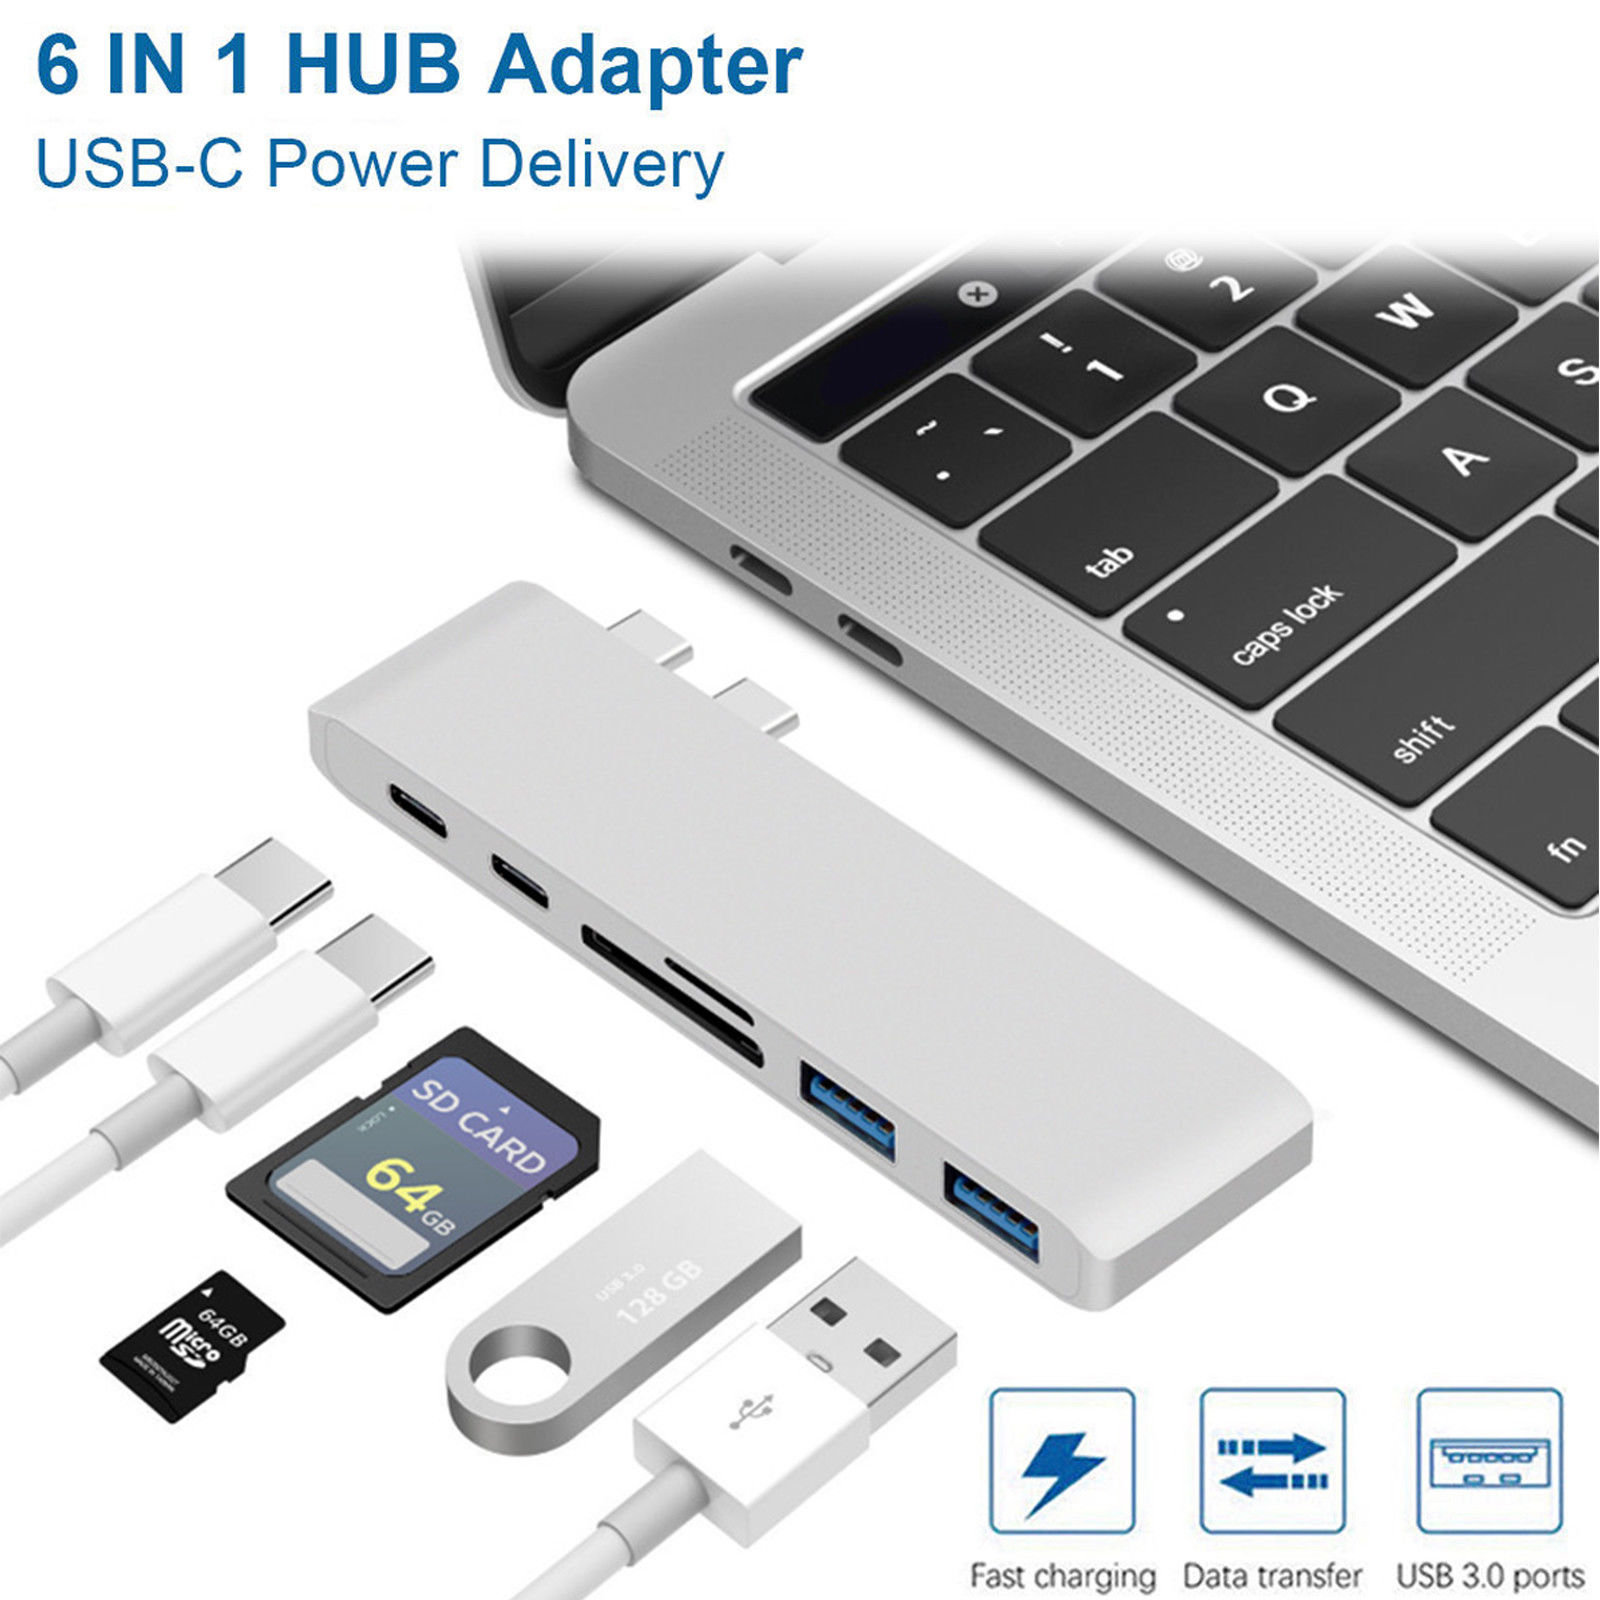 EEEkit Type C Hub, Aluminum USB C Adapter for 2016/2017 MacBook Pro 13in and 15in with 2 USB 3.0 Ports, SD/Micro SD Card Reader, Thunderbolt 3 Fast 40GB/S Type C Charger Port and USB C Port (Sliver)